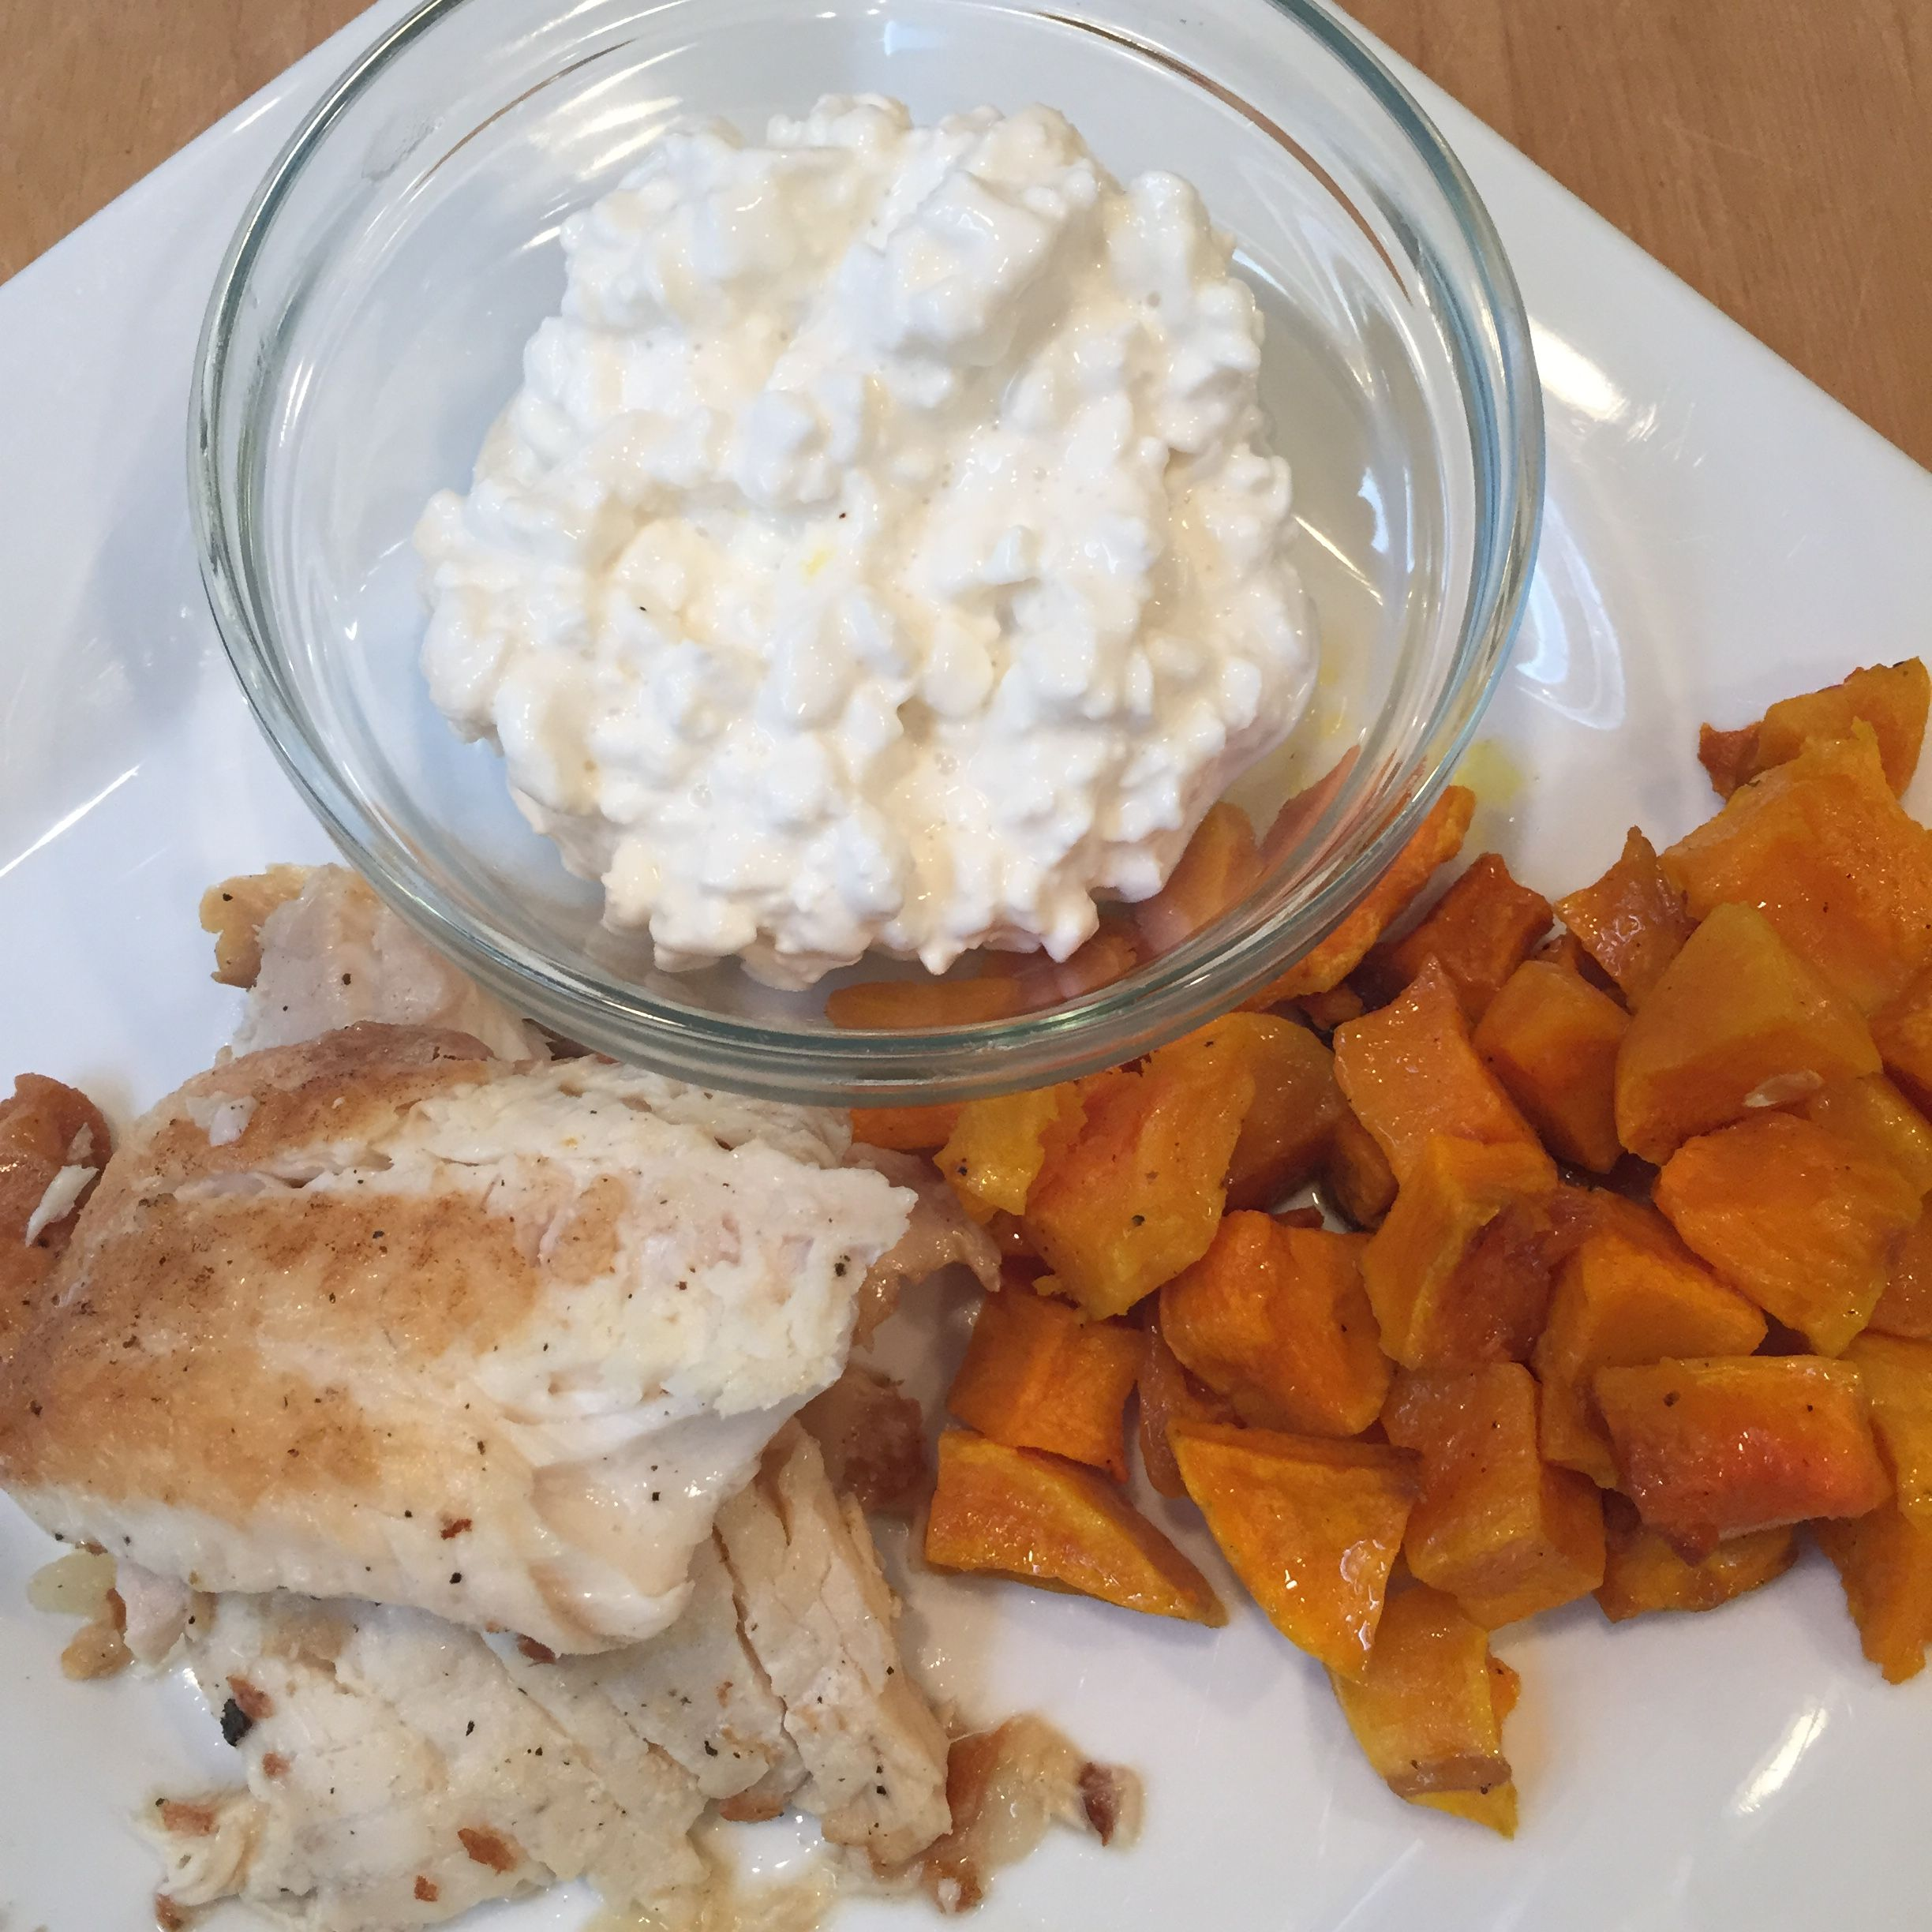 Great 382 Calorie Lunch: 1 Cup Butternut Squash, 1 Teaspoon Olive Oil, Calories,  Serving Pan Seared Tilapia With Citrus Vinaigrette, Cup Cottage Cheese